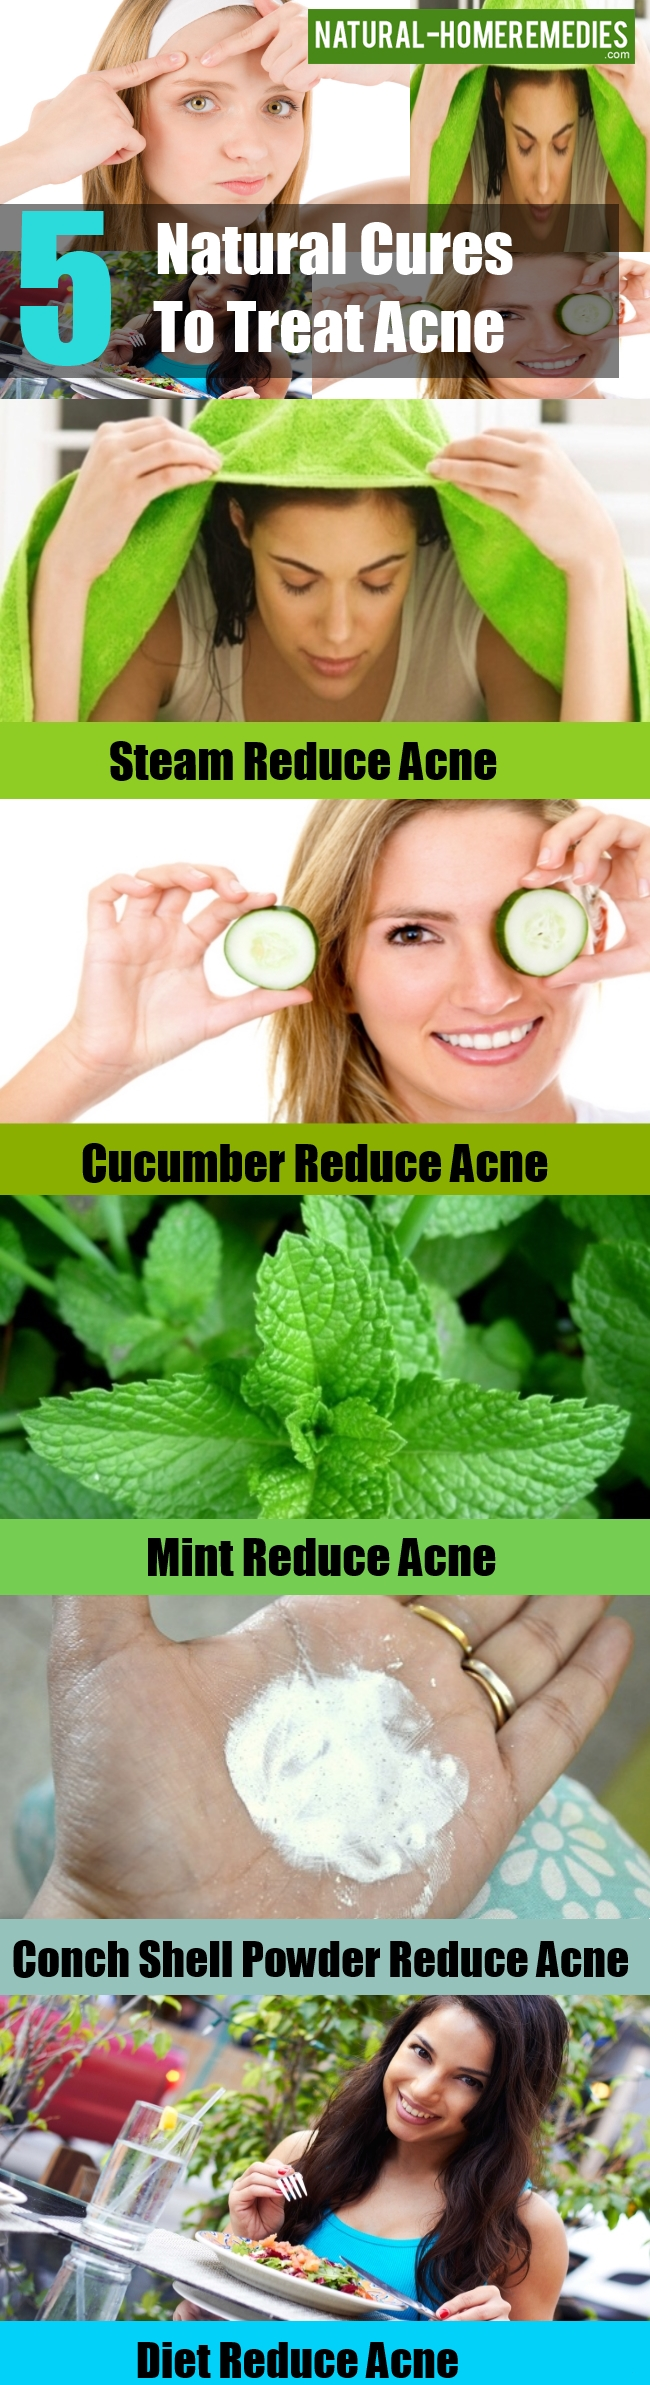 Natural Cures To Treat Acne